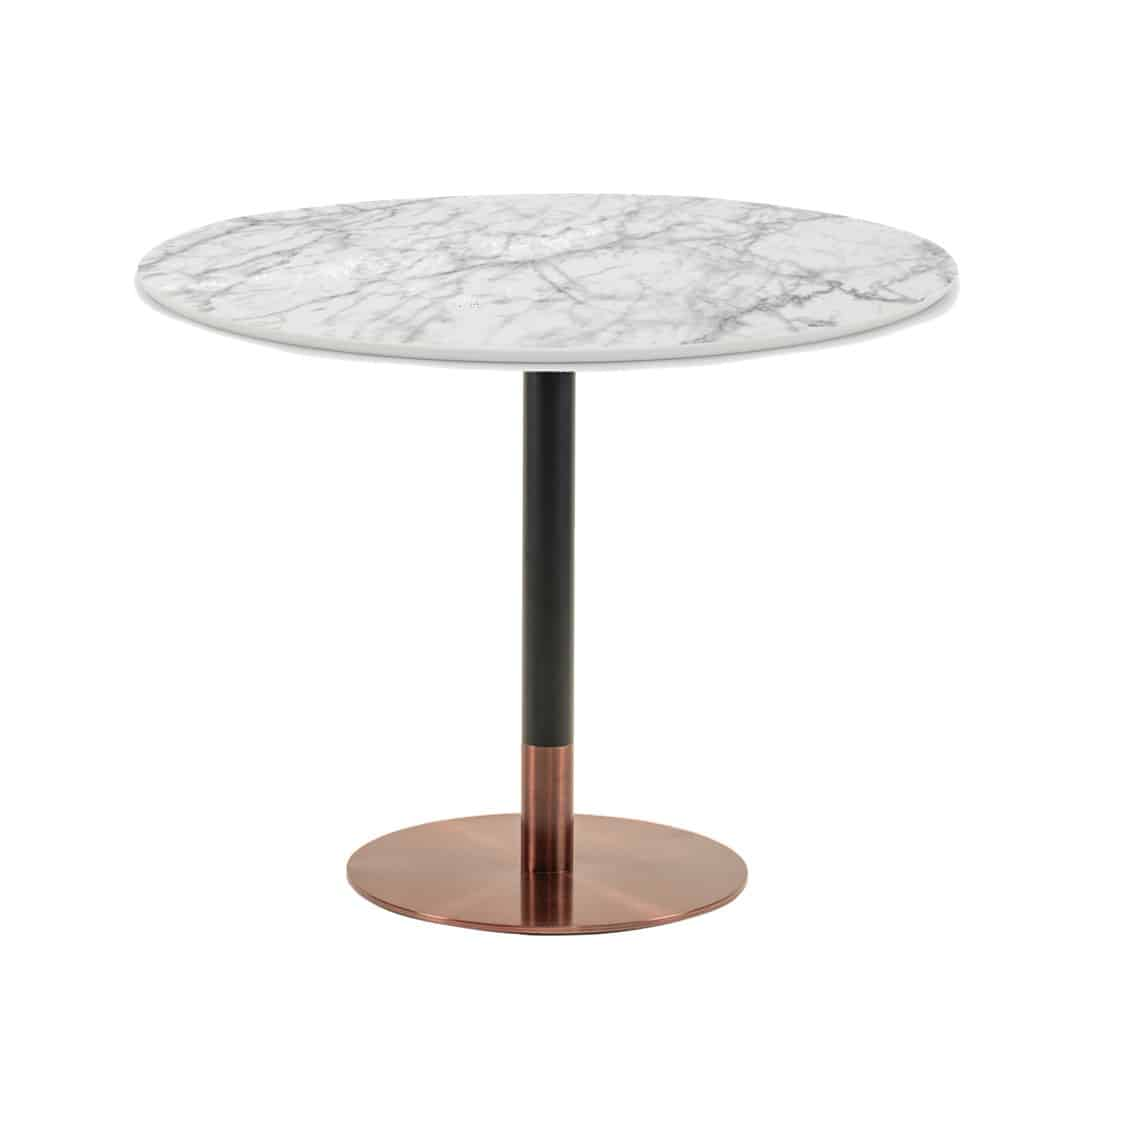 Zeus Table Base Rose Gold & Black DeFrae Contract Furniture with marble top